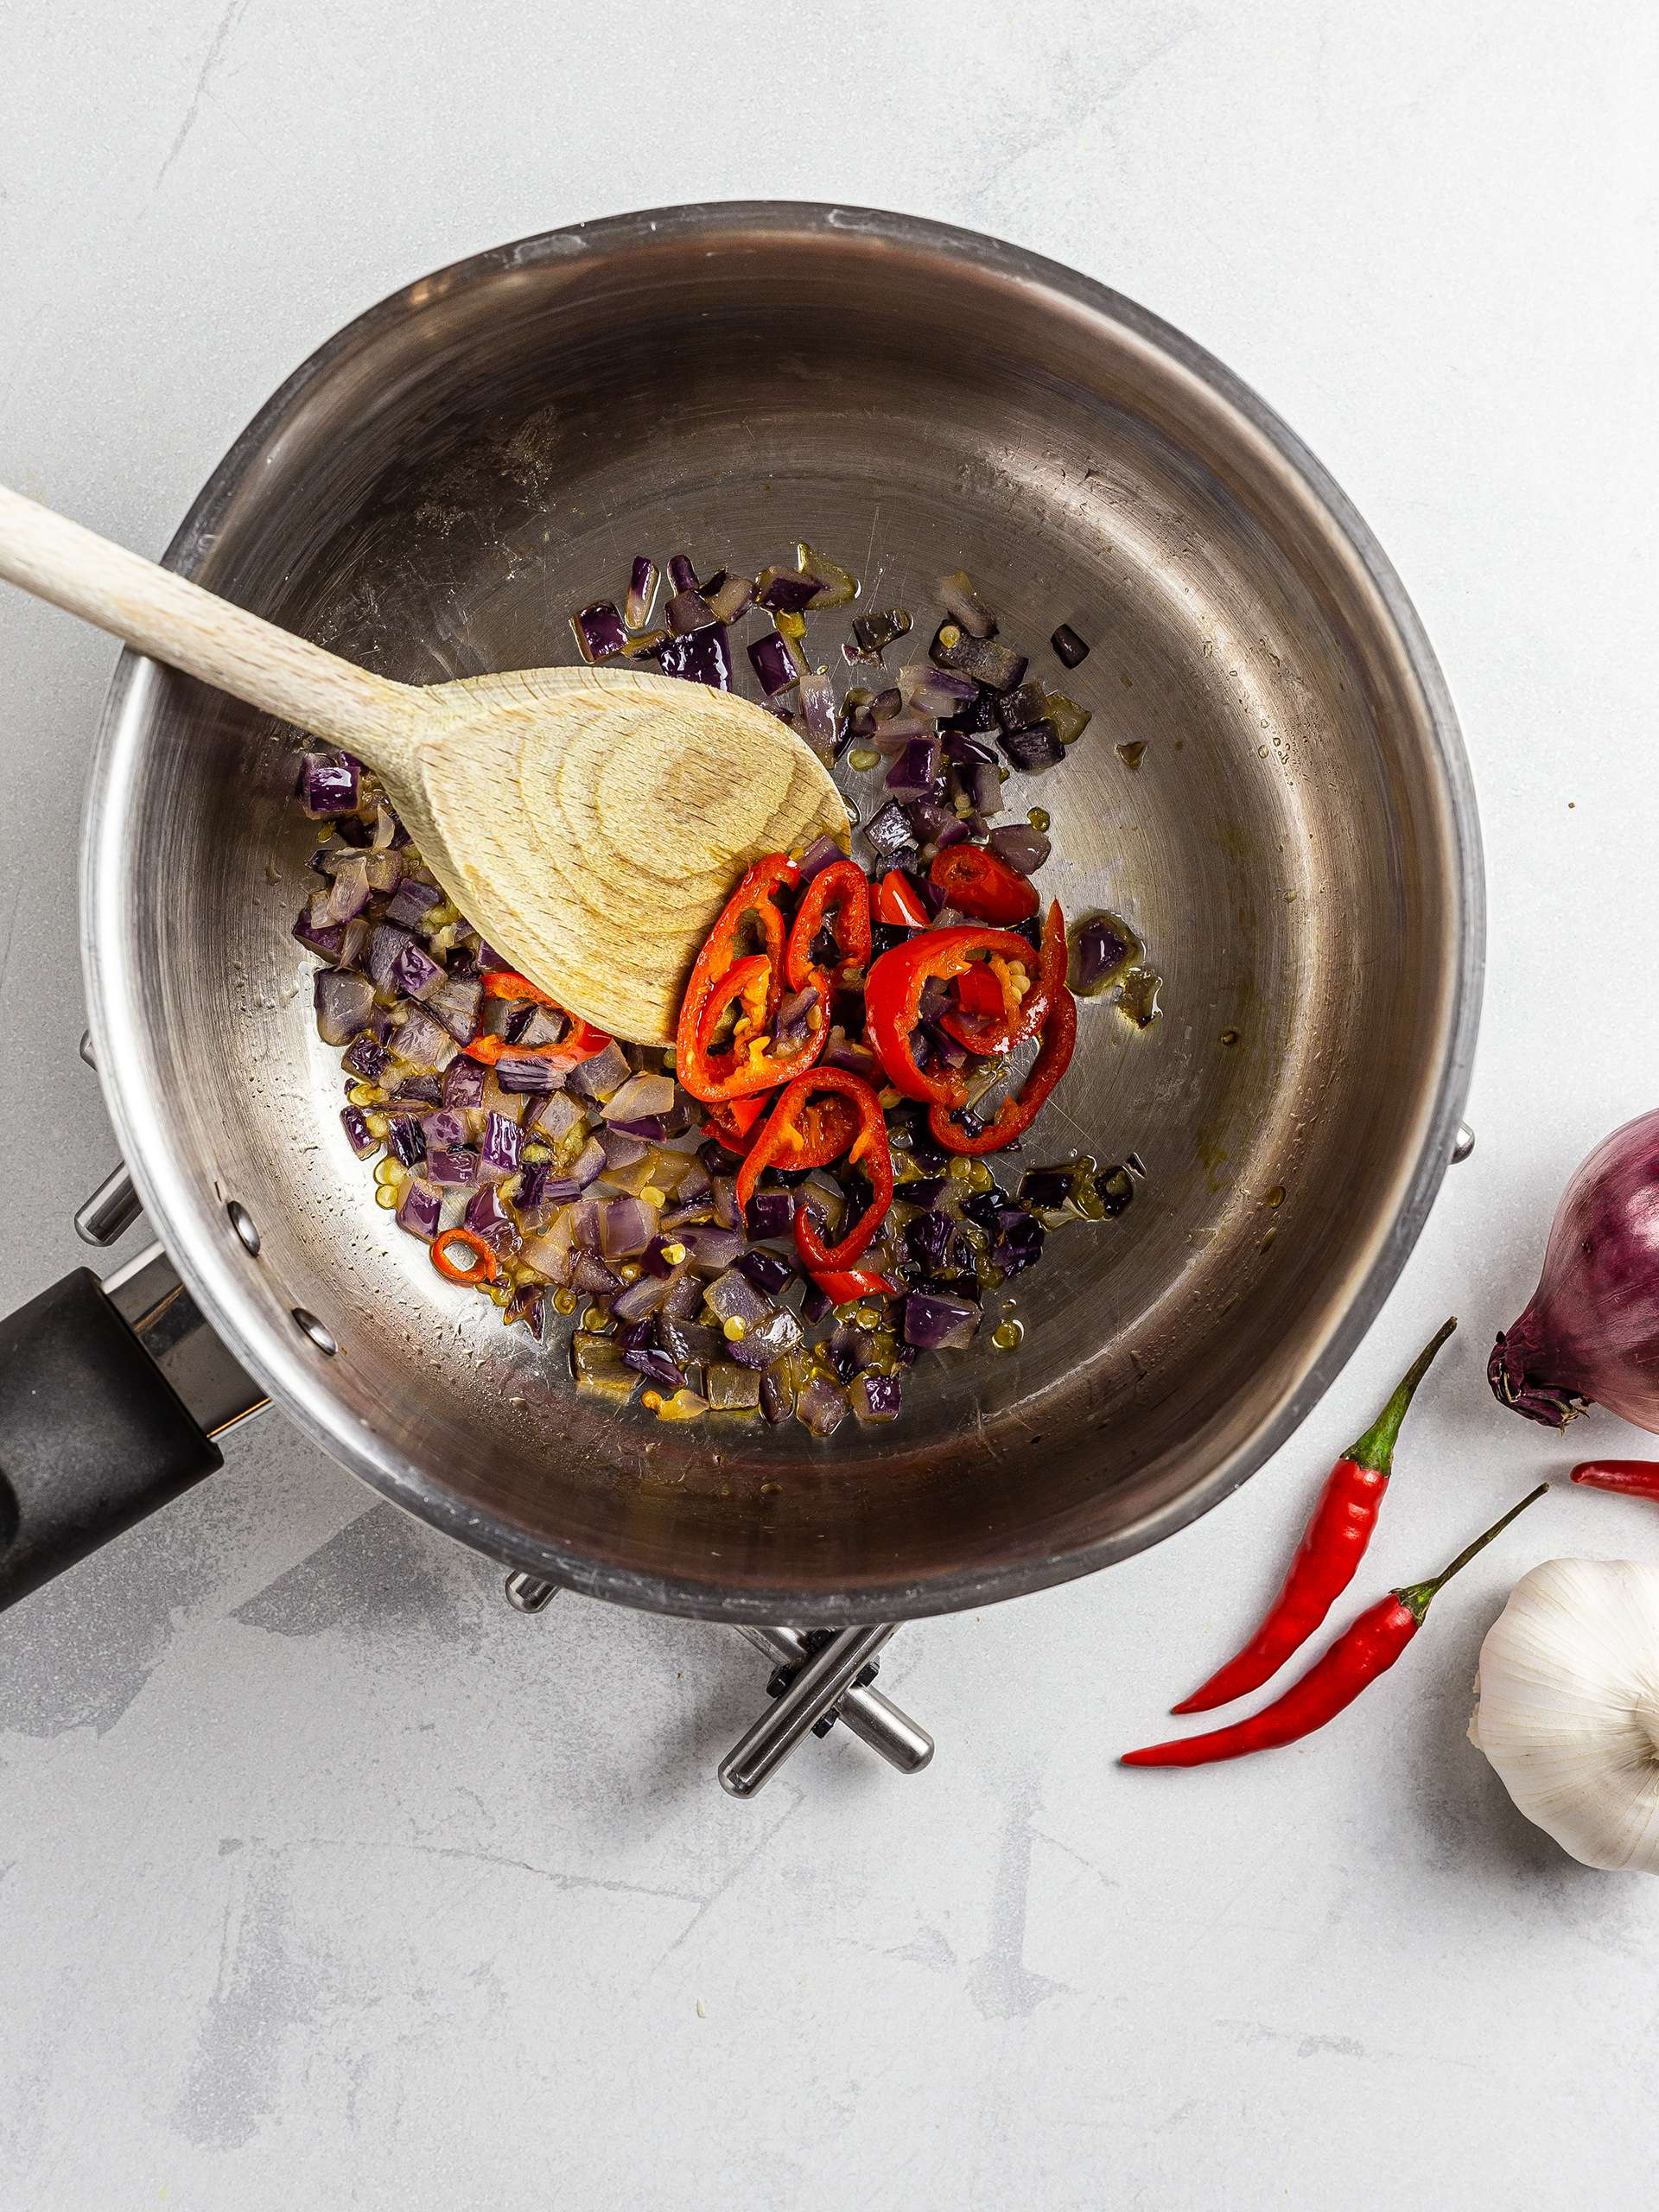 Onions sizzled with garlic and chillies